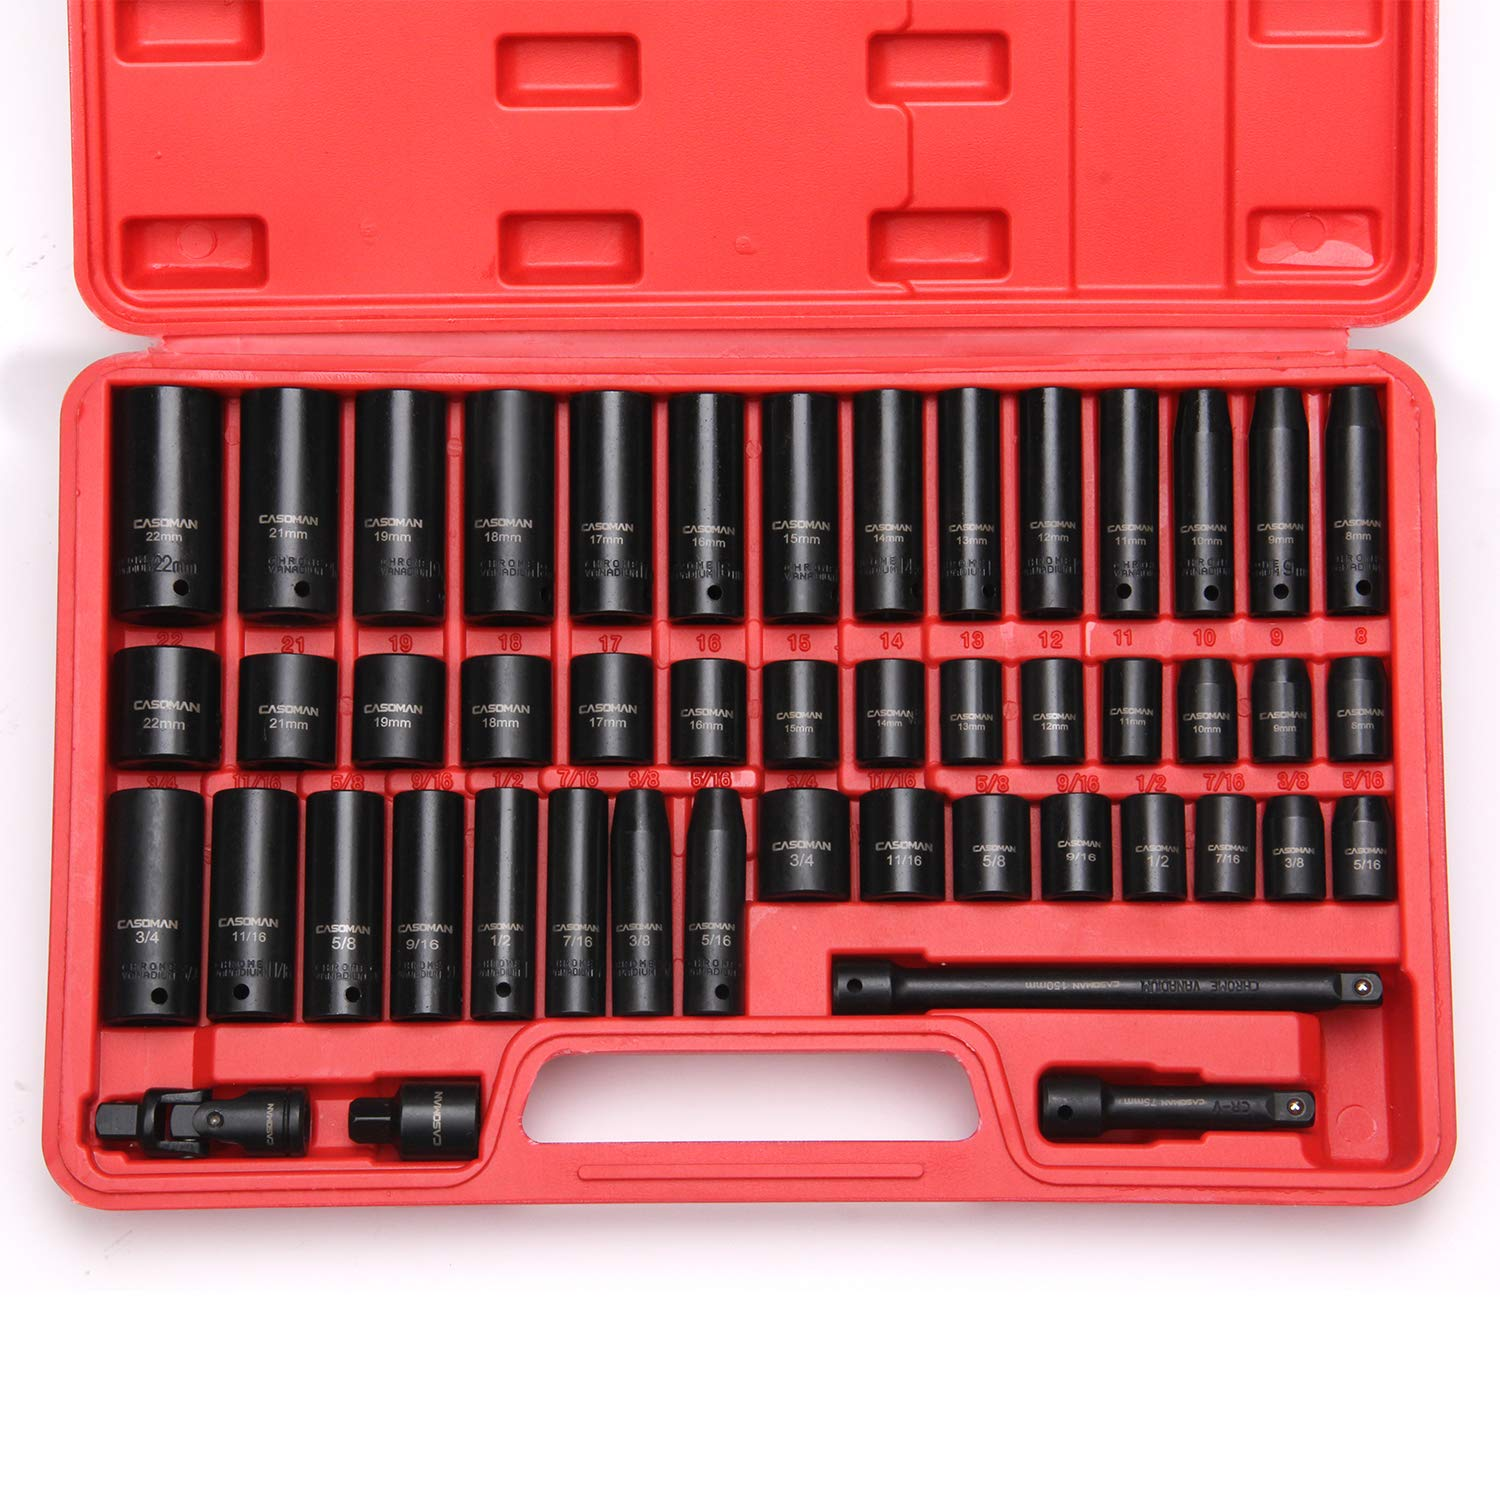 CASOMAN 3/8'' Drive Impact Socket Set, 48 Piece Standard SAE and Metric Sizes (5/16-Inch to 3/4-Inch and 8-22 mm), 6 Point, Cr-V Steel Socket Set by CASOMAN